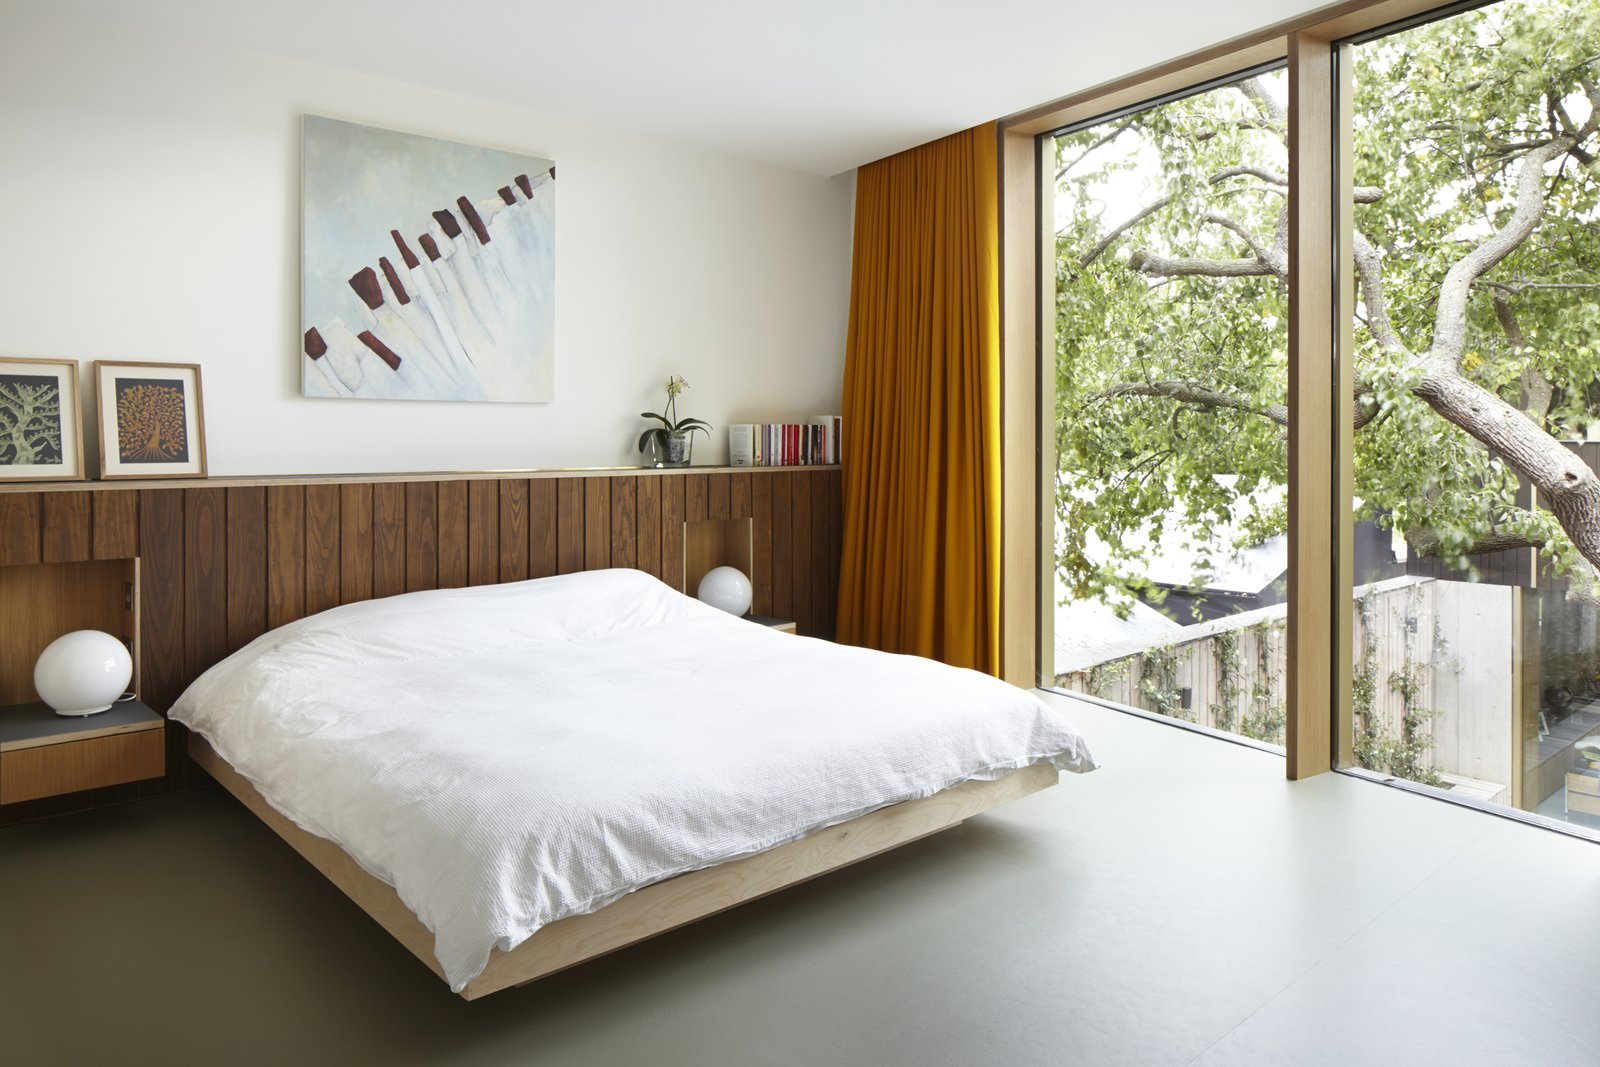 Bedroom, Bed, and Concrete Floor Edgley Design designed the beds and headboards in the bedrooms. Just one of the several bespoke details that the firm included in the home.  Photo 9 of 9 in This Modern Courtyard Home Celebrates a 100-Year-Old Tree